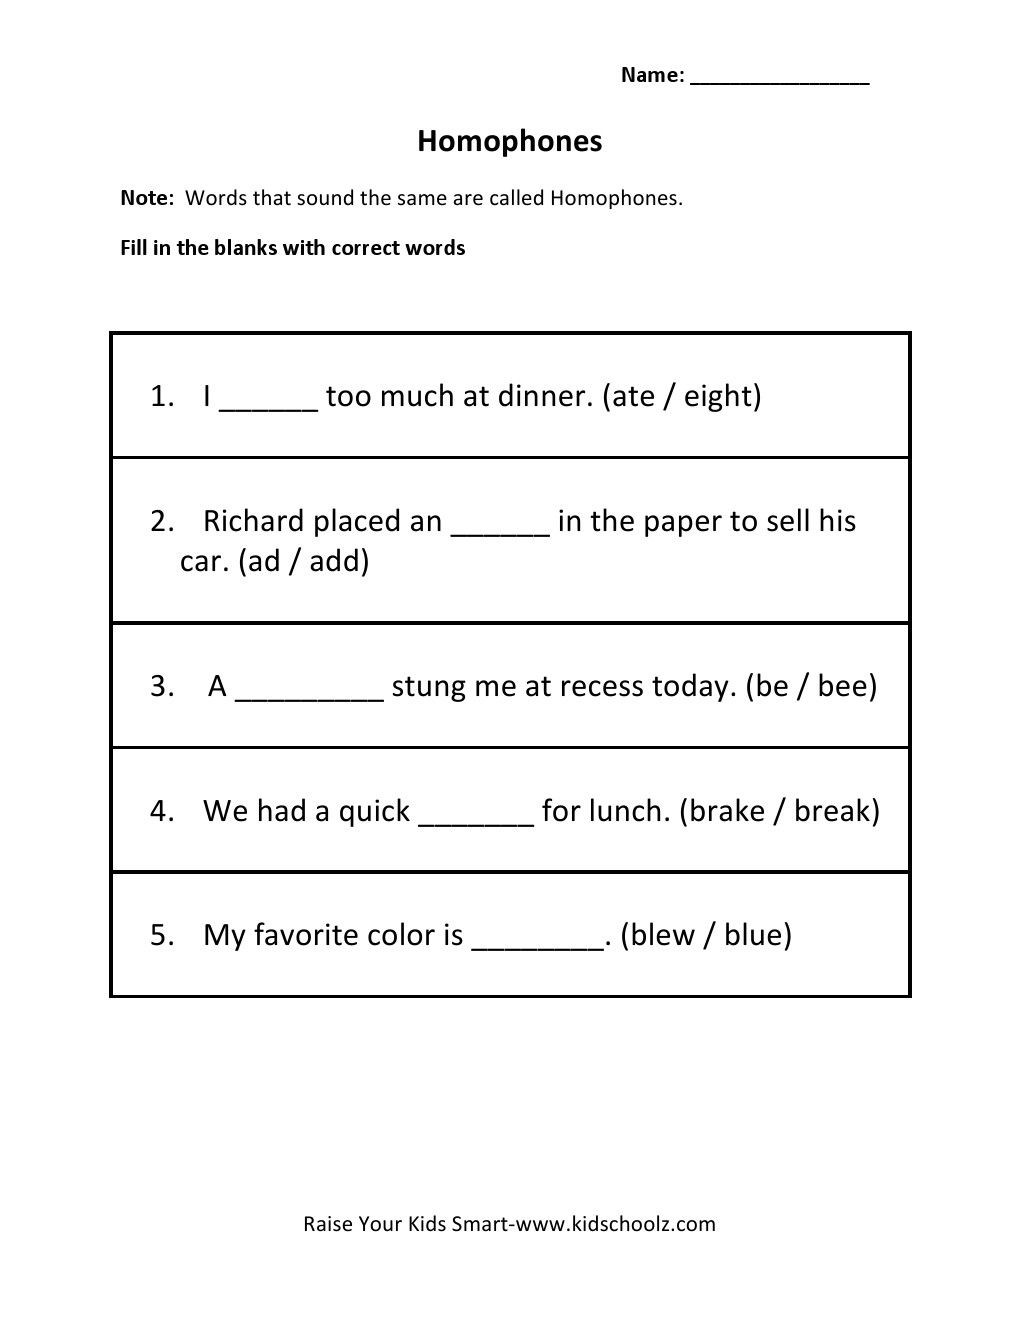 Homophone Worksheet 4th Grade Homophones Worksheets for Grade 5